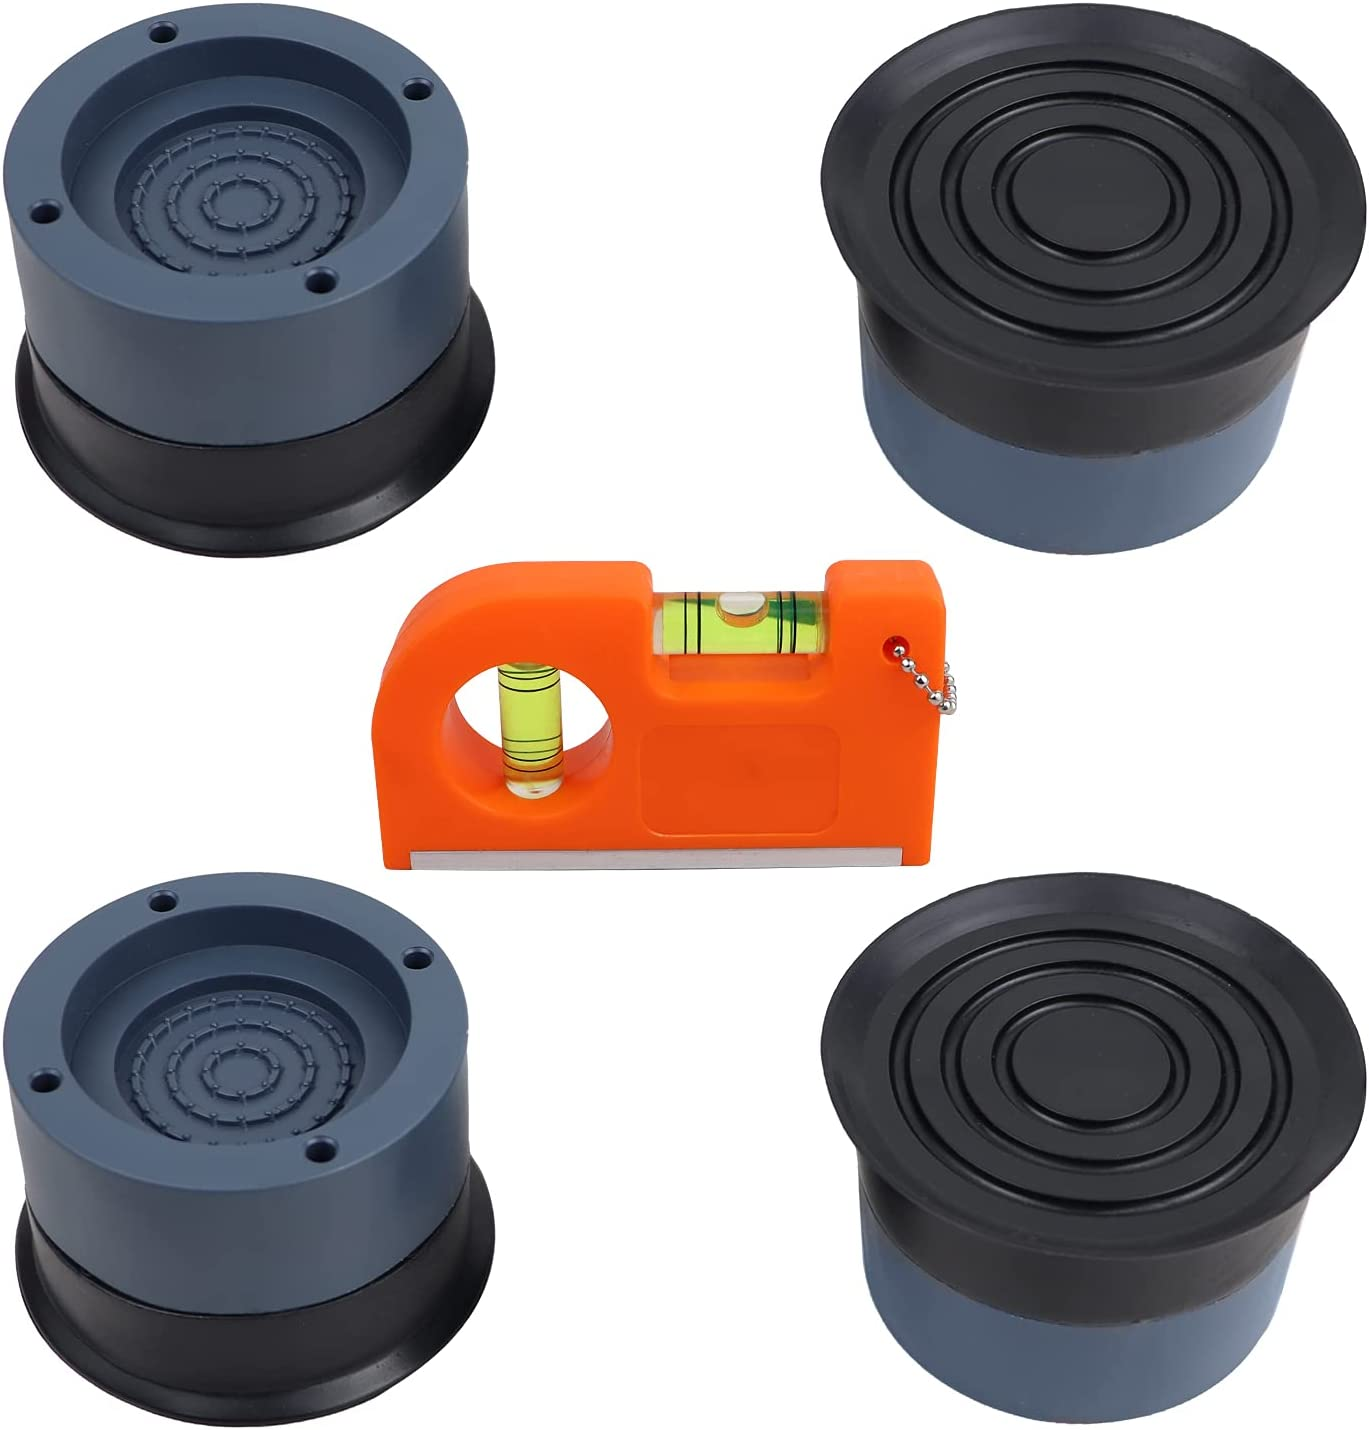 Upgraded Shock and Noise Cancelling Washing Machine Support, Rubber Washing Machine Feet Pads(4PCS), Including a Bubble Level, Anti Slip Anti Vibration and Noise reducing